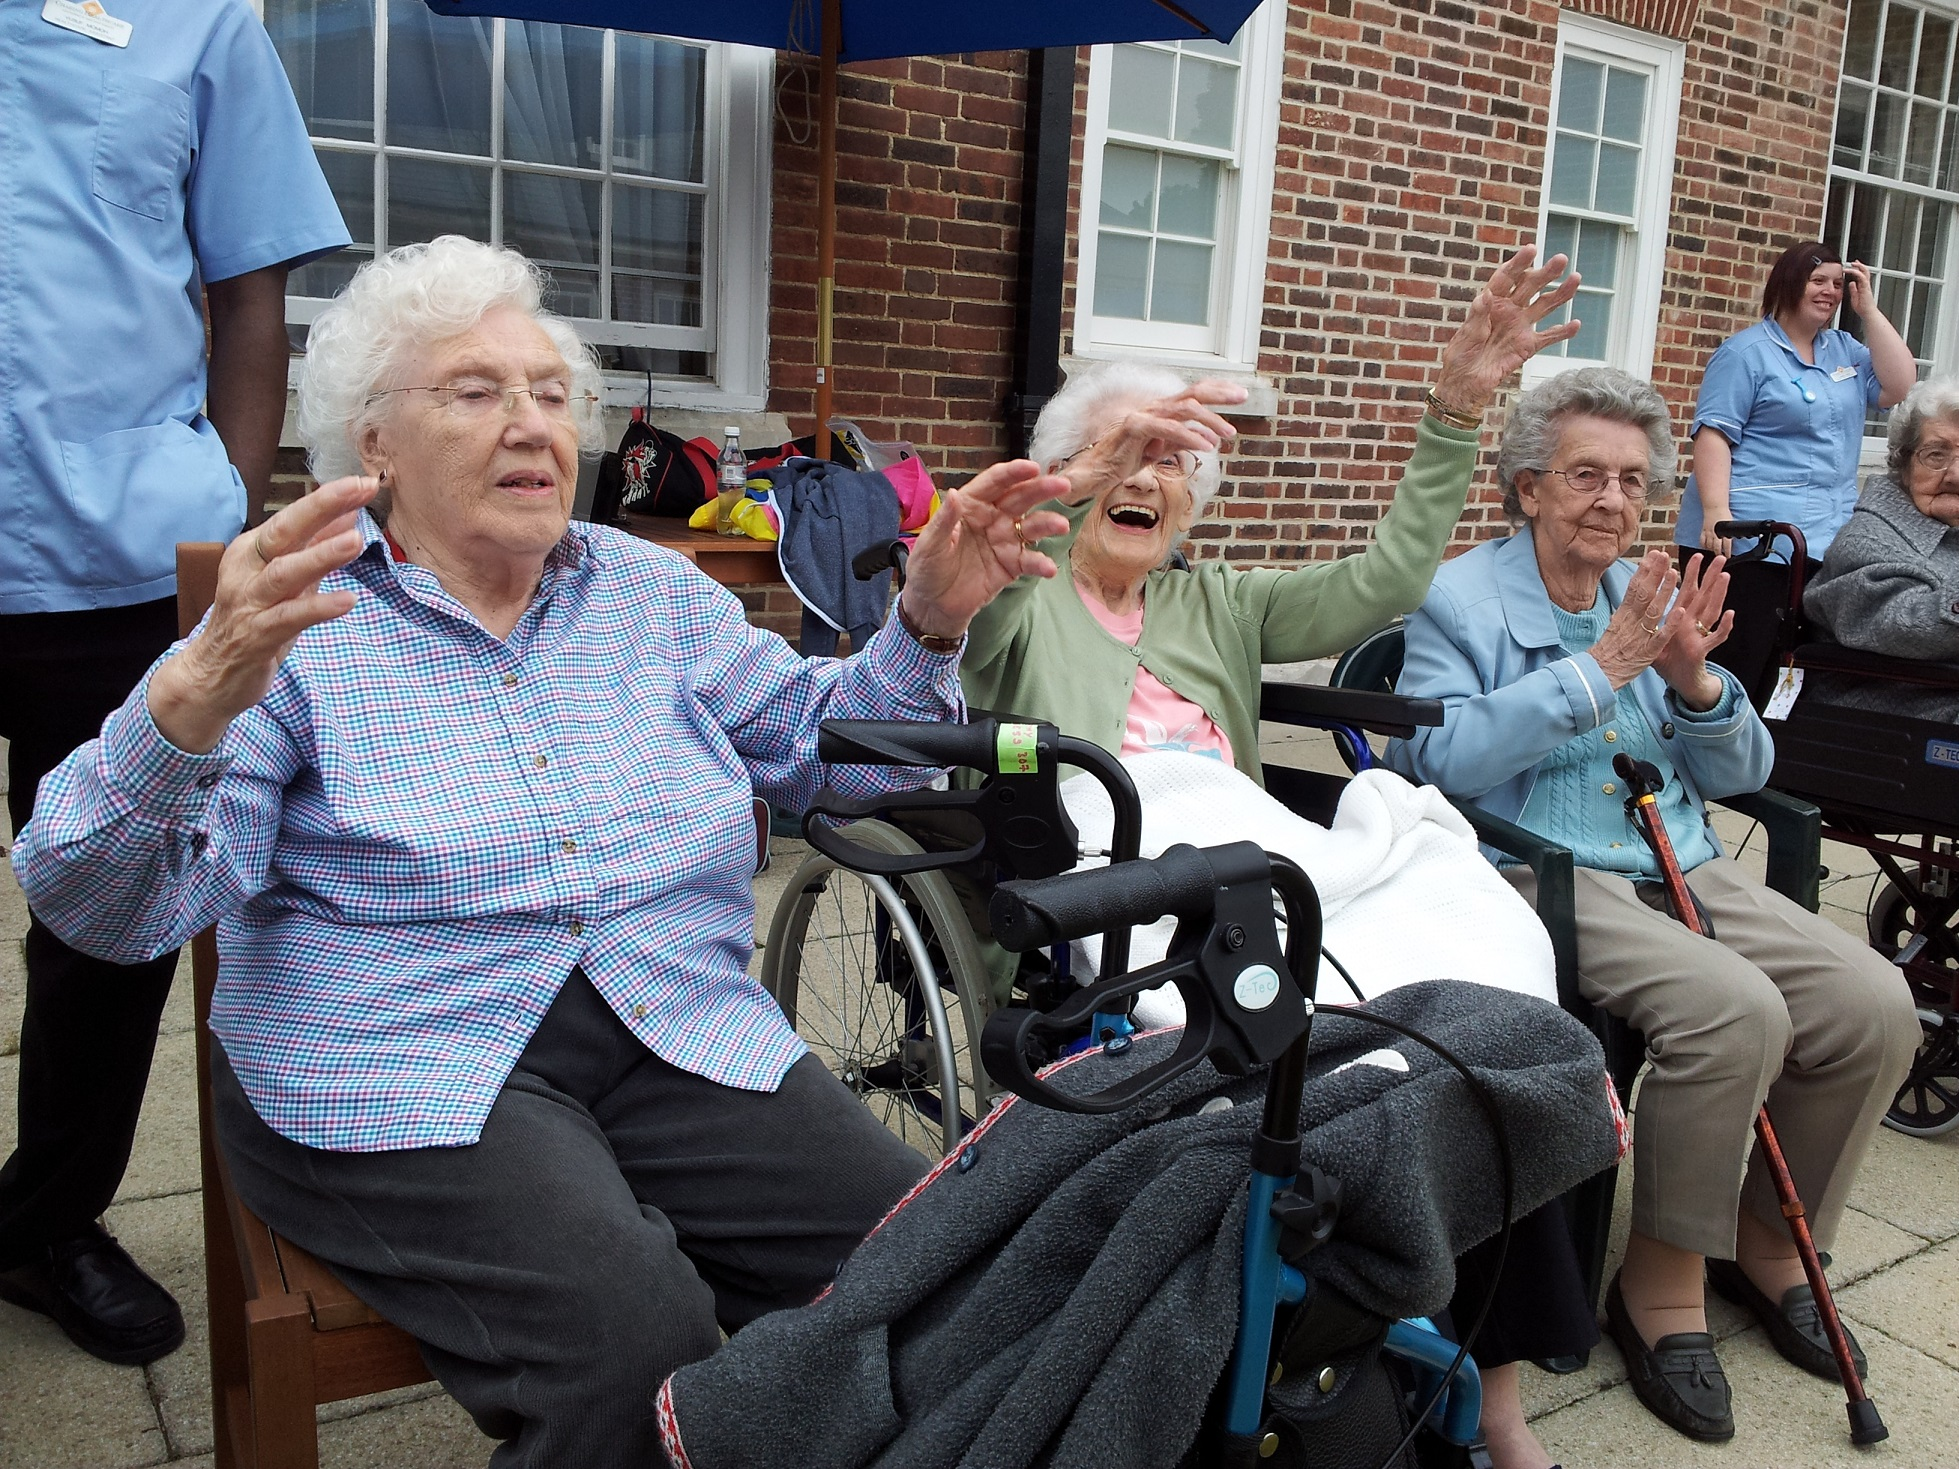 https://www.therightstepdc.co.uk/wp-content/uploads/2020/07/Socially-Distant-Out-door-dance-Active-Armchairs-Right-Step.jpg